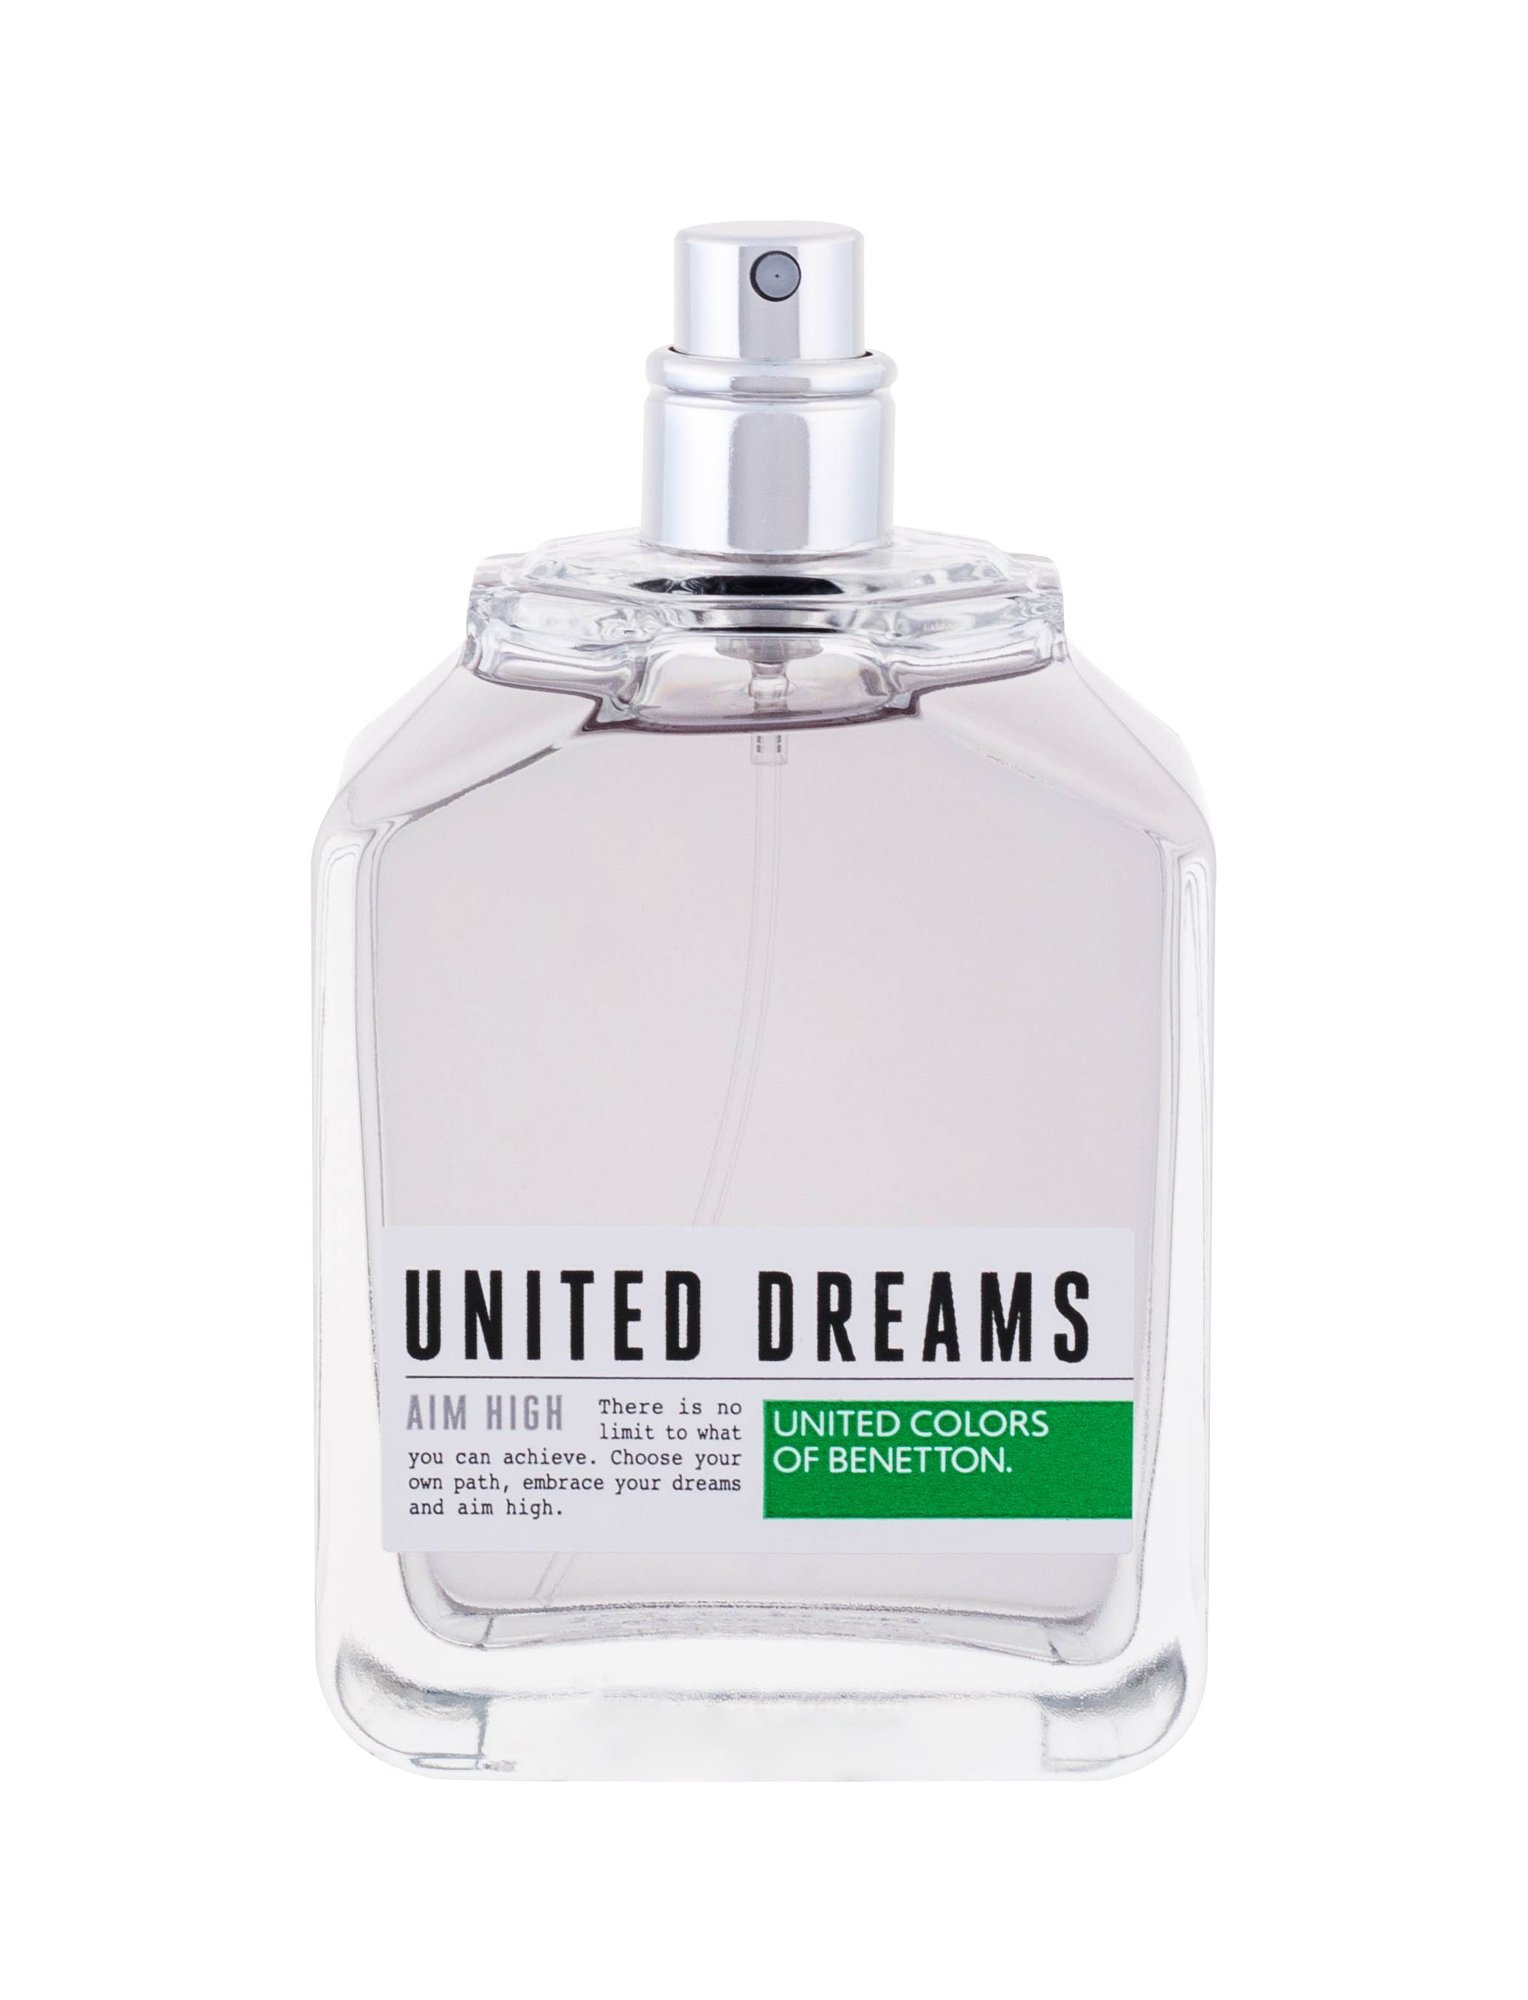 Benetton United Dreams Aim High Eau de Toilette 100ml